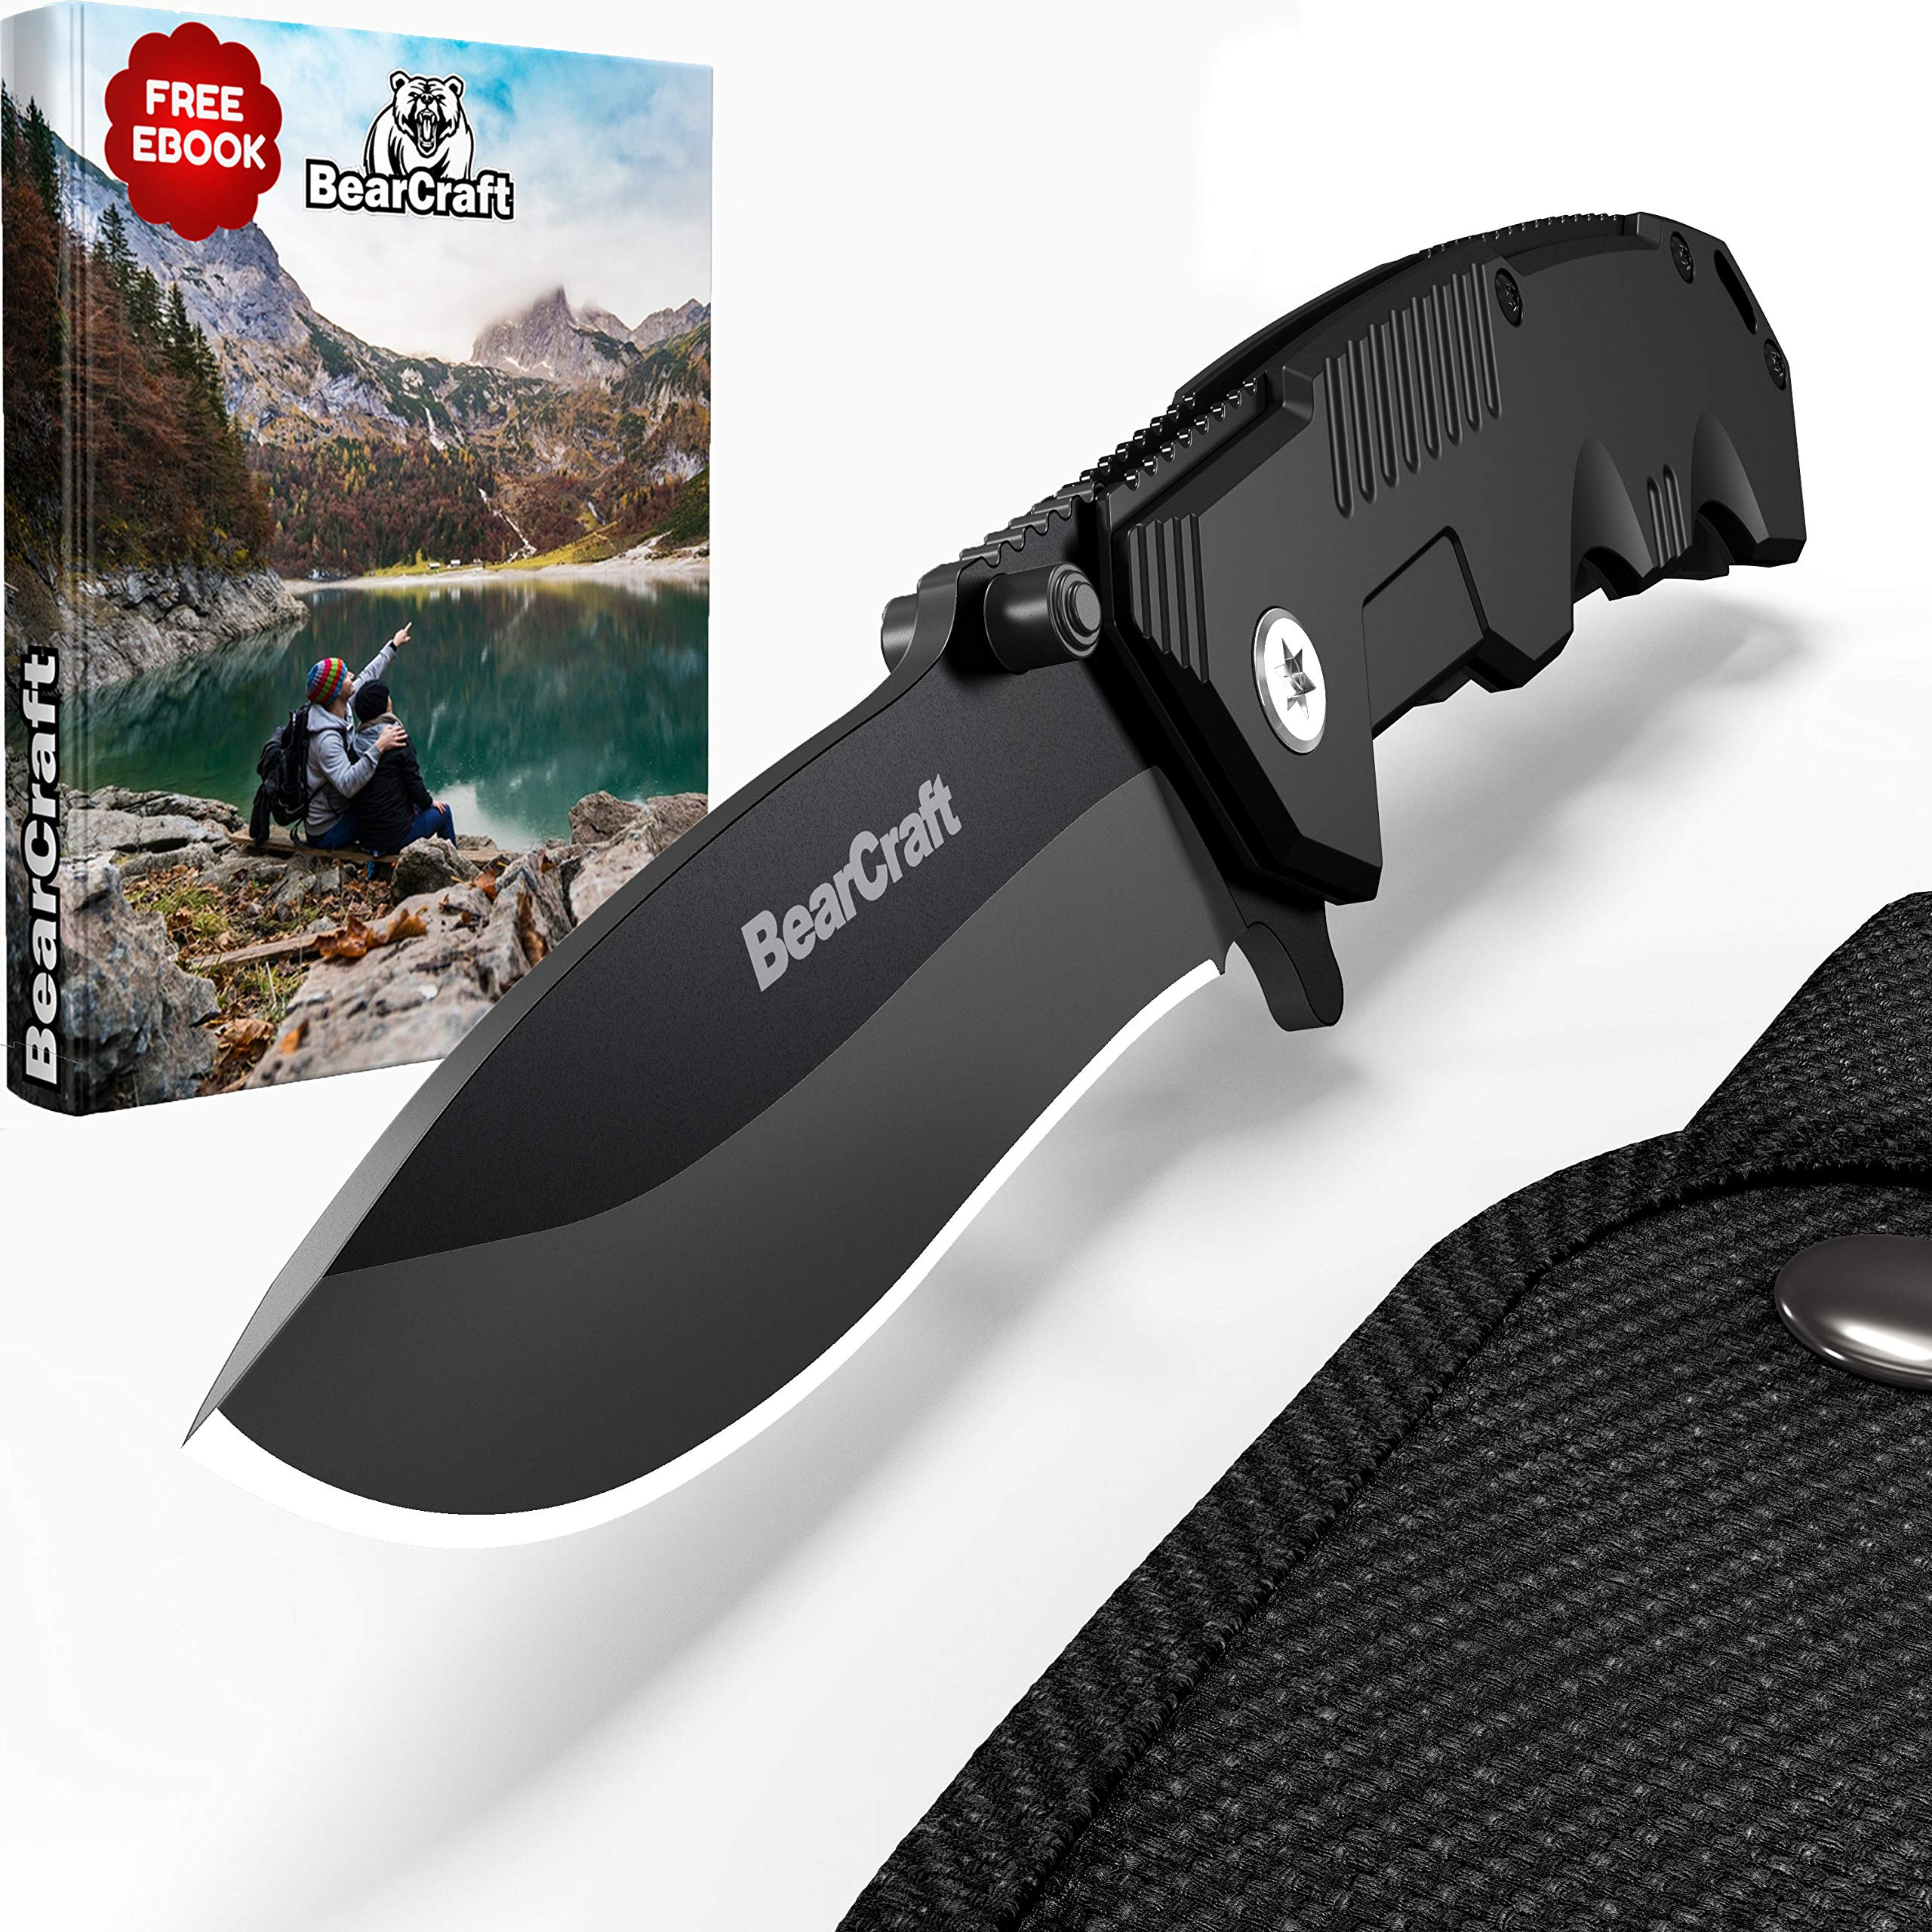 BearCraft Folding Knife in Matt Black inclusiveFREE eBook | Outdoor Survival Pocket Knife | Small one-Hand Knife with Stainless Steel Blade and Aluminum Handle| Perfect for Work Hiking Camping by BearCraft (Image #1)